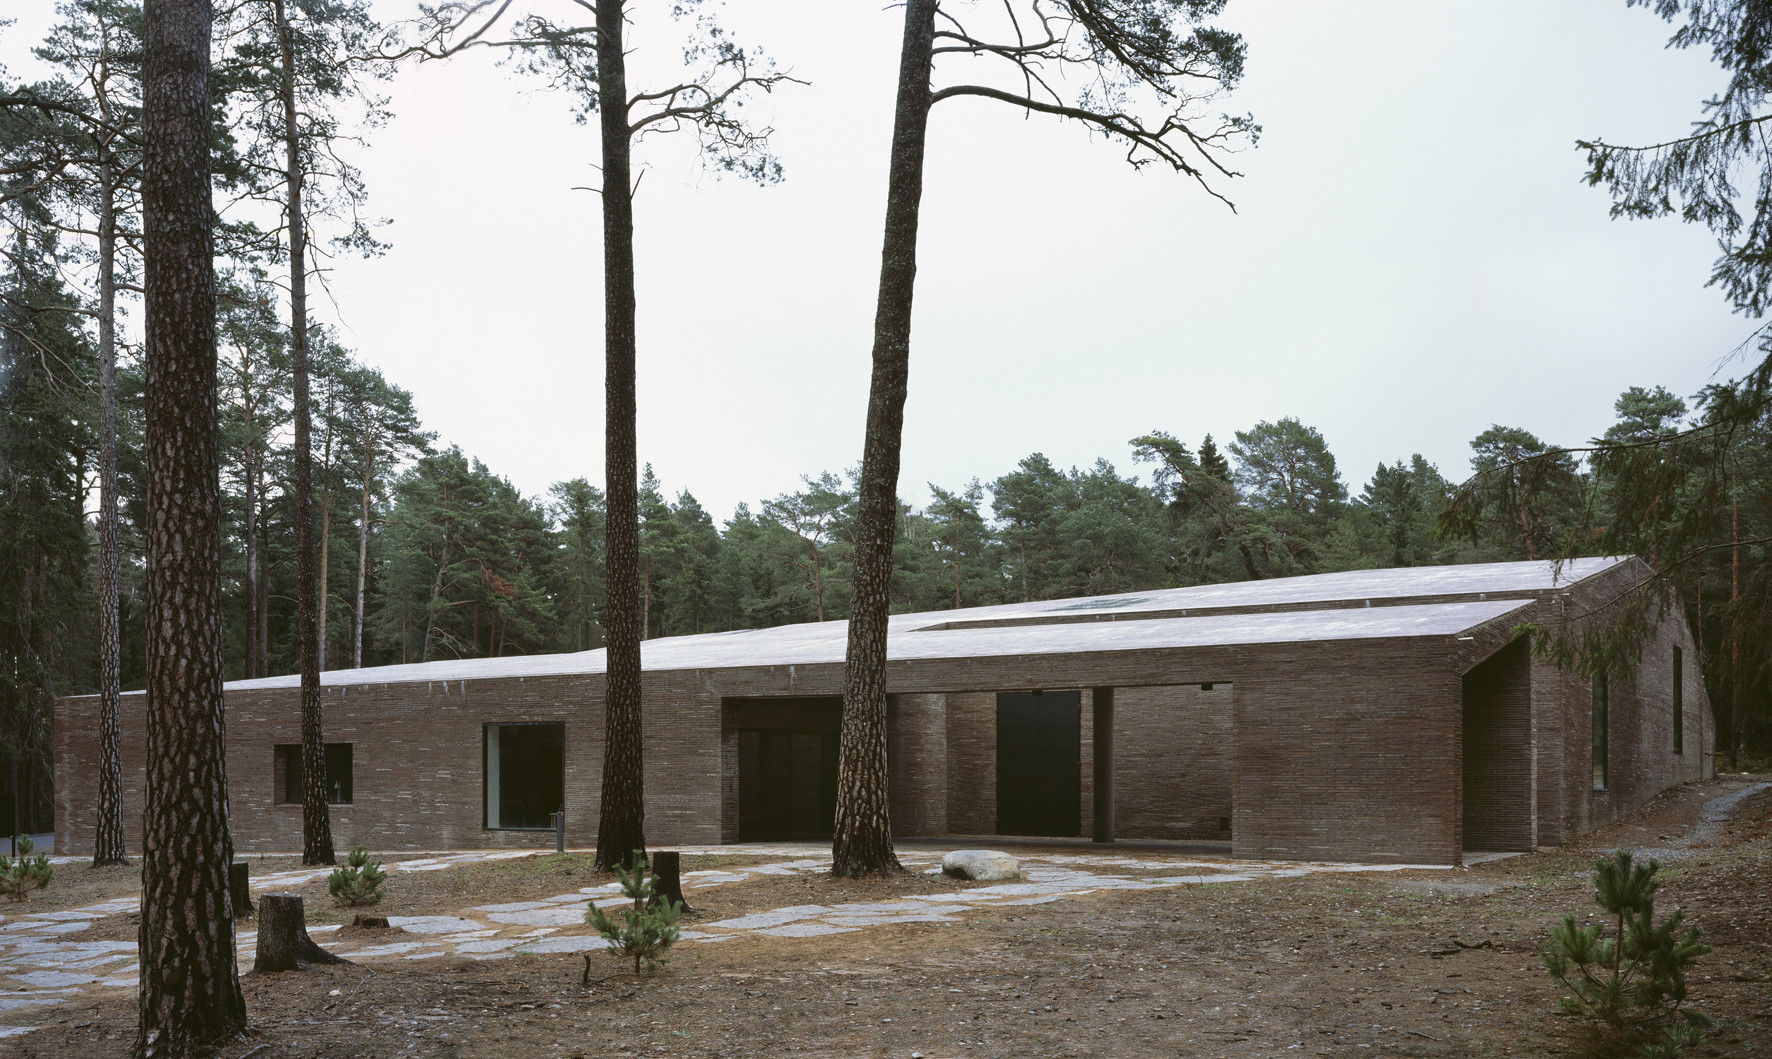 The New Crematorium Of The Woodland Cemetery. Image © Ioana Marinescu